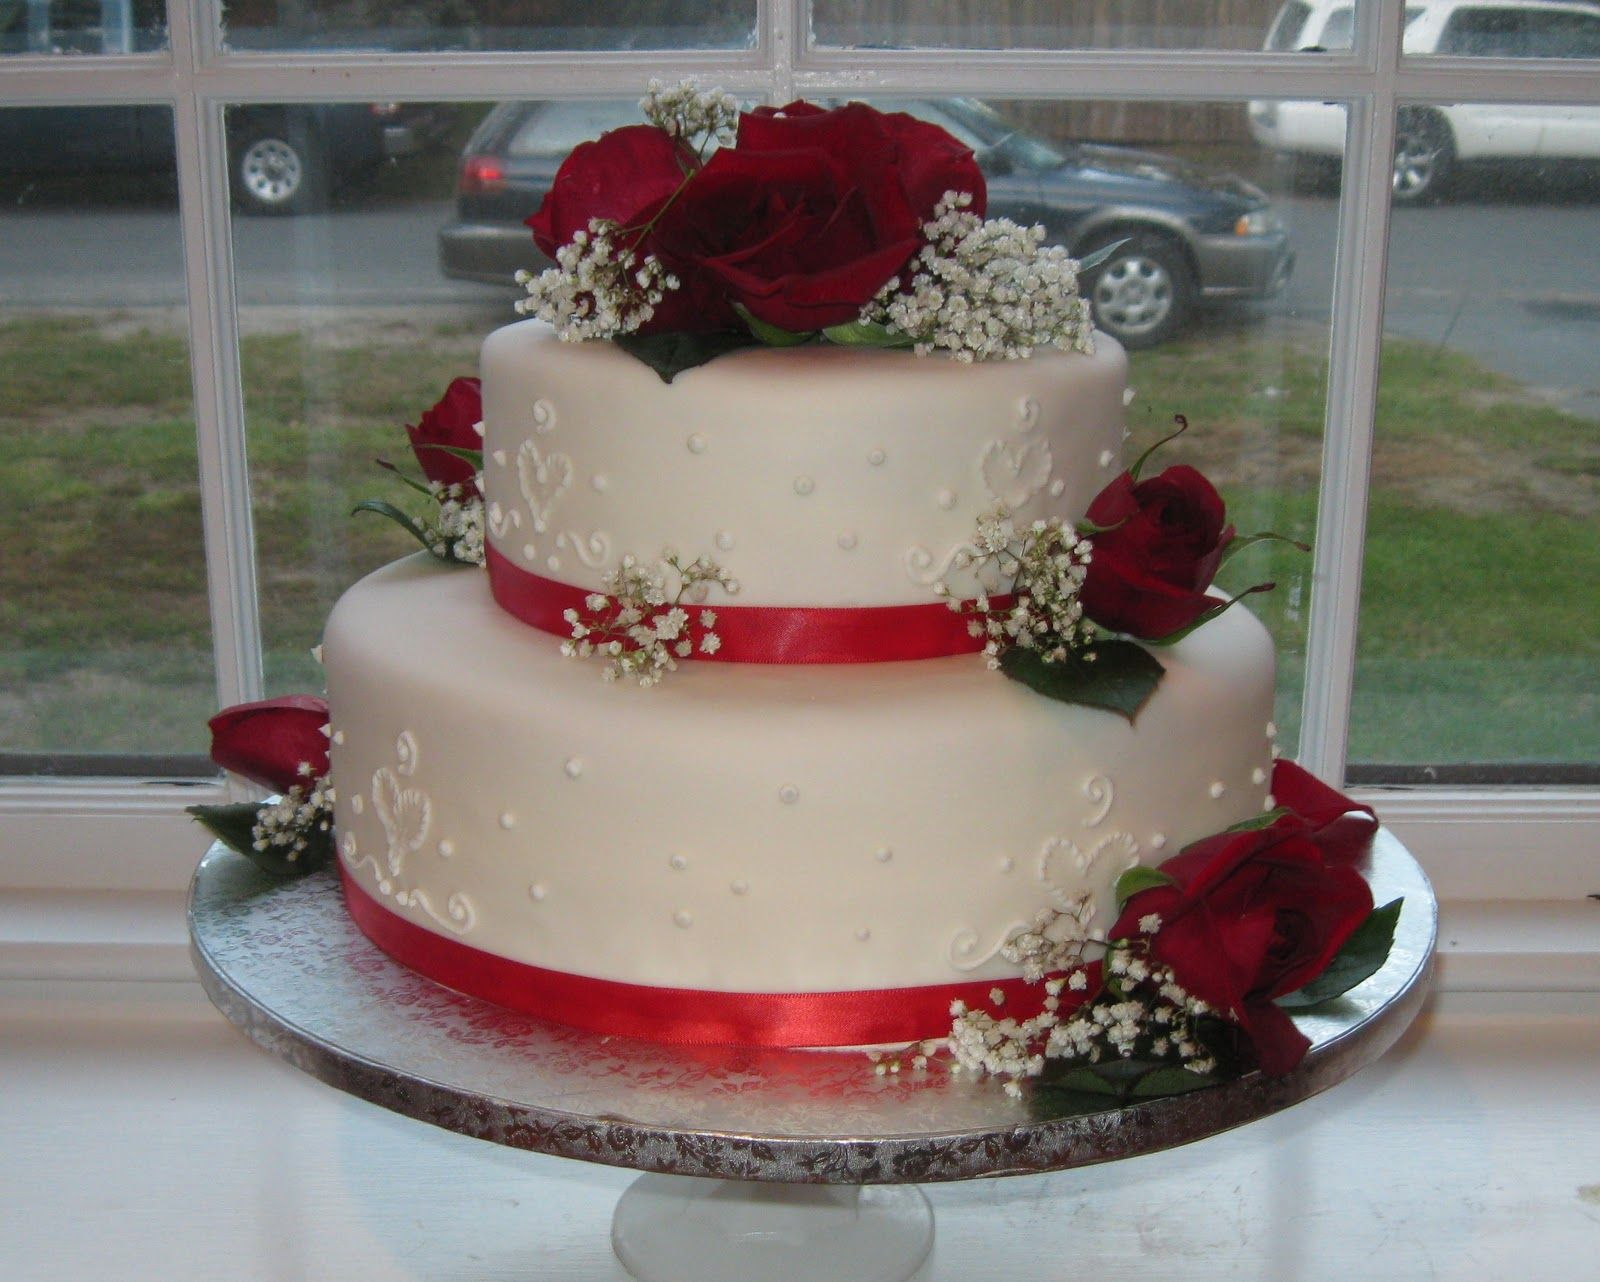 Wedding Cakes Pictures: Sunflower Wedding Cakes Heart wedding cake pictures